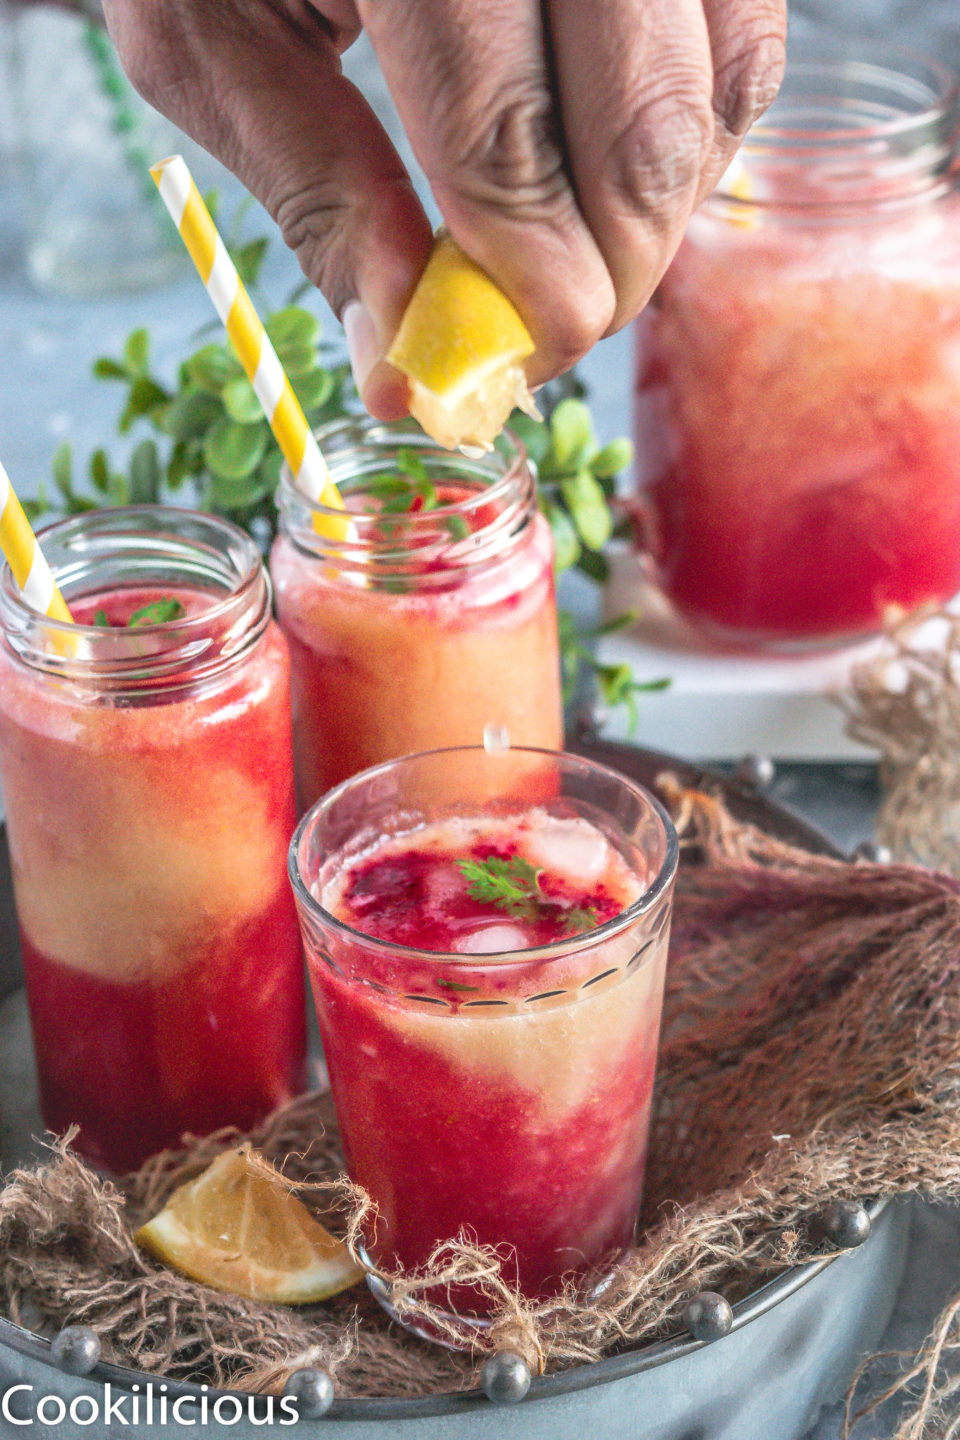 a hand squeezing lemon juice over a glass of Fresh Guava & Watermelon Non Boozy Summer Drink